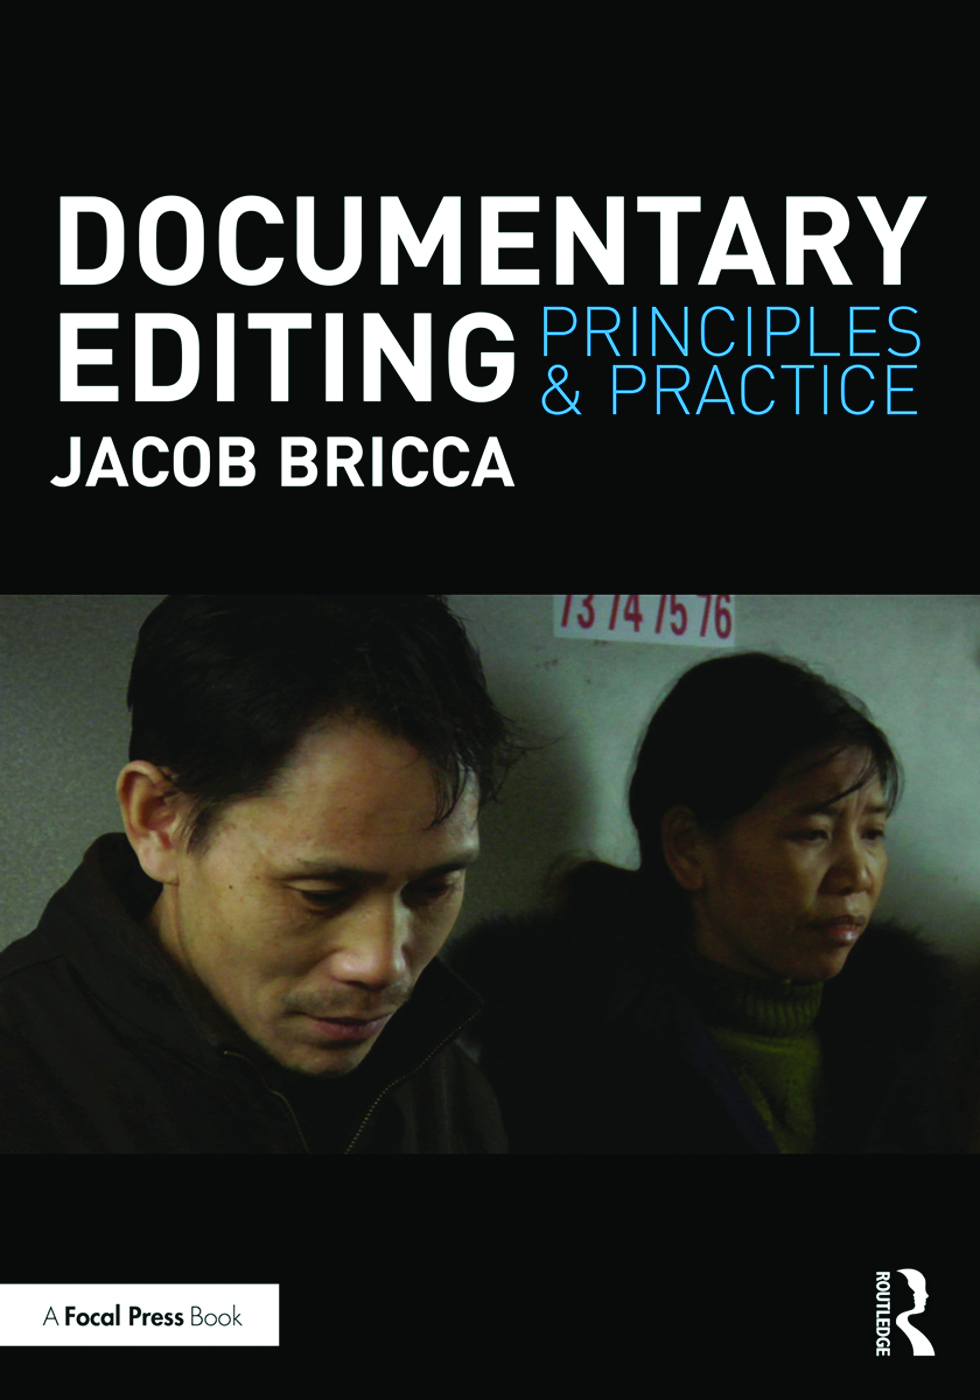 Documentary Editing: Principles & Practice By Jacob Bricca Routledge, a Focal Press Book, 2018